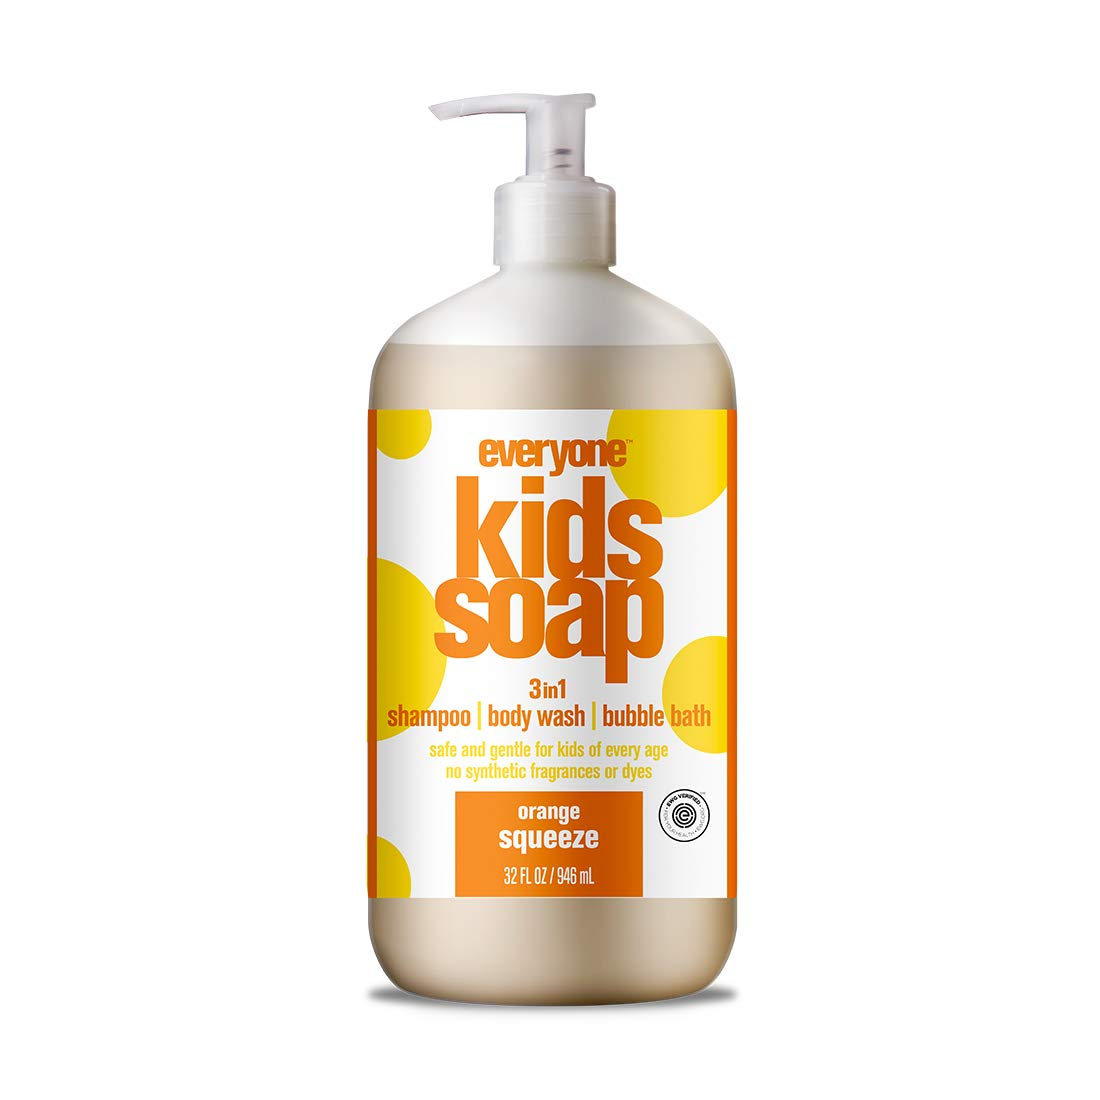 Everyone 3-in-1 Soap for Every Kid for Safe, Gentle and Natural Shampoo, Body Wash, or Bubble Bath, Orange Squeeze, 32 Fl Oz (Pack of 6)